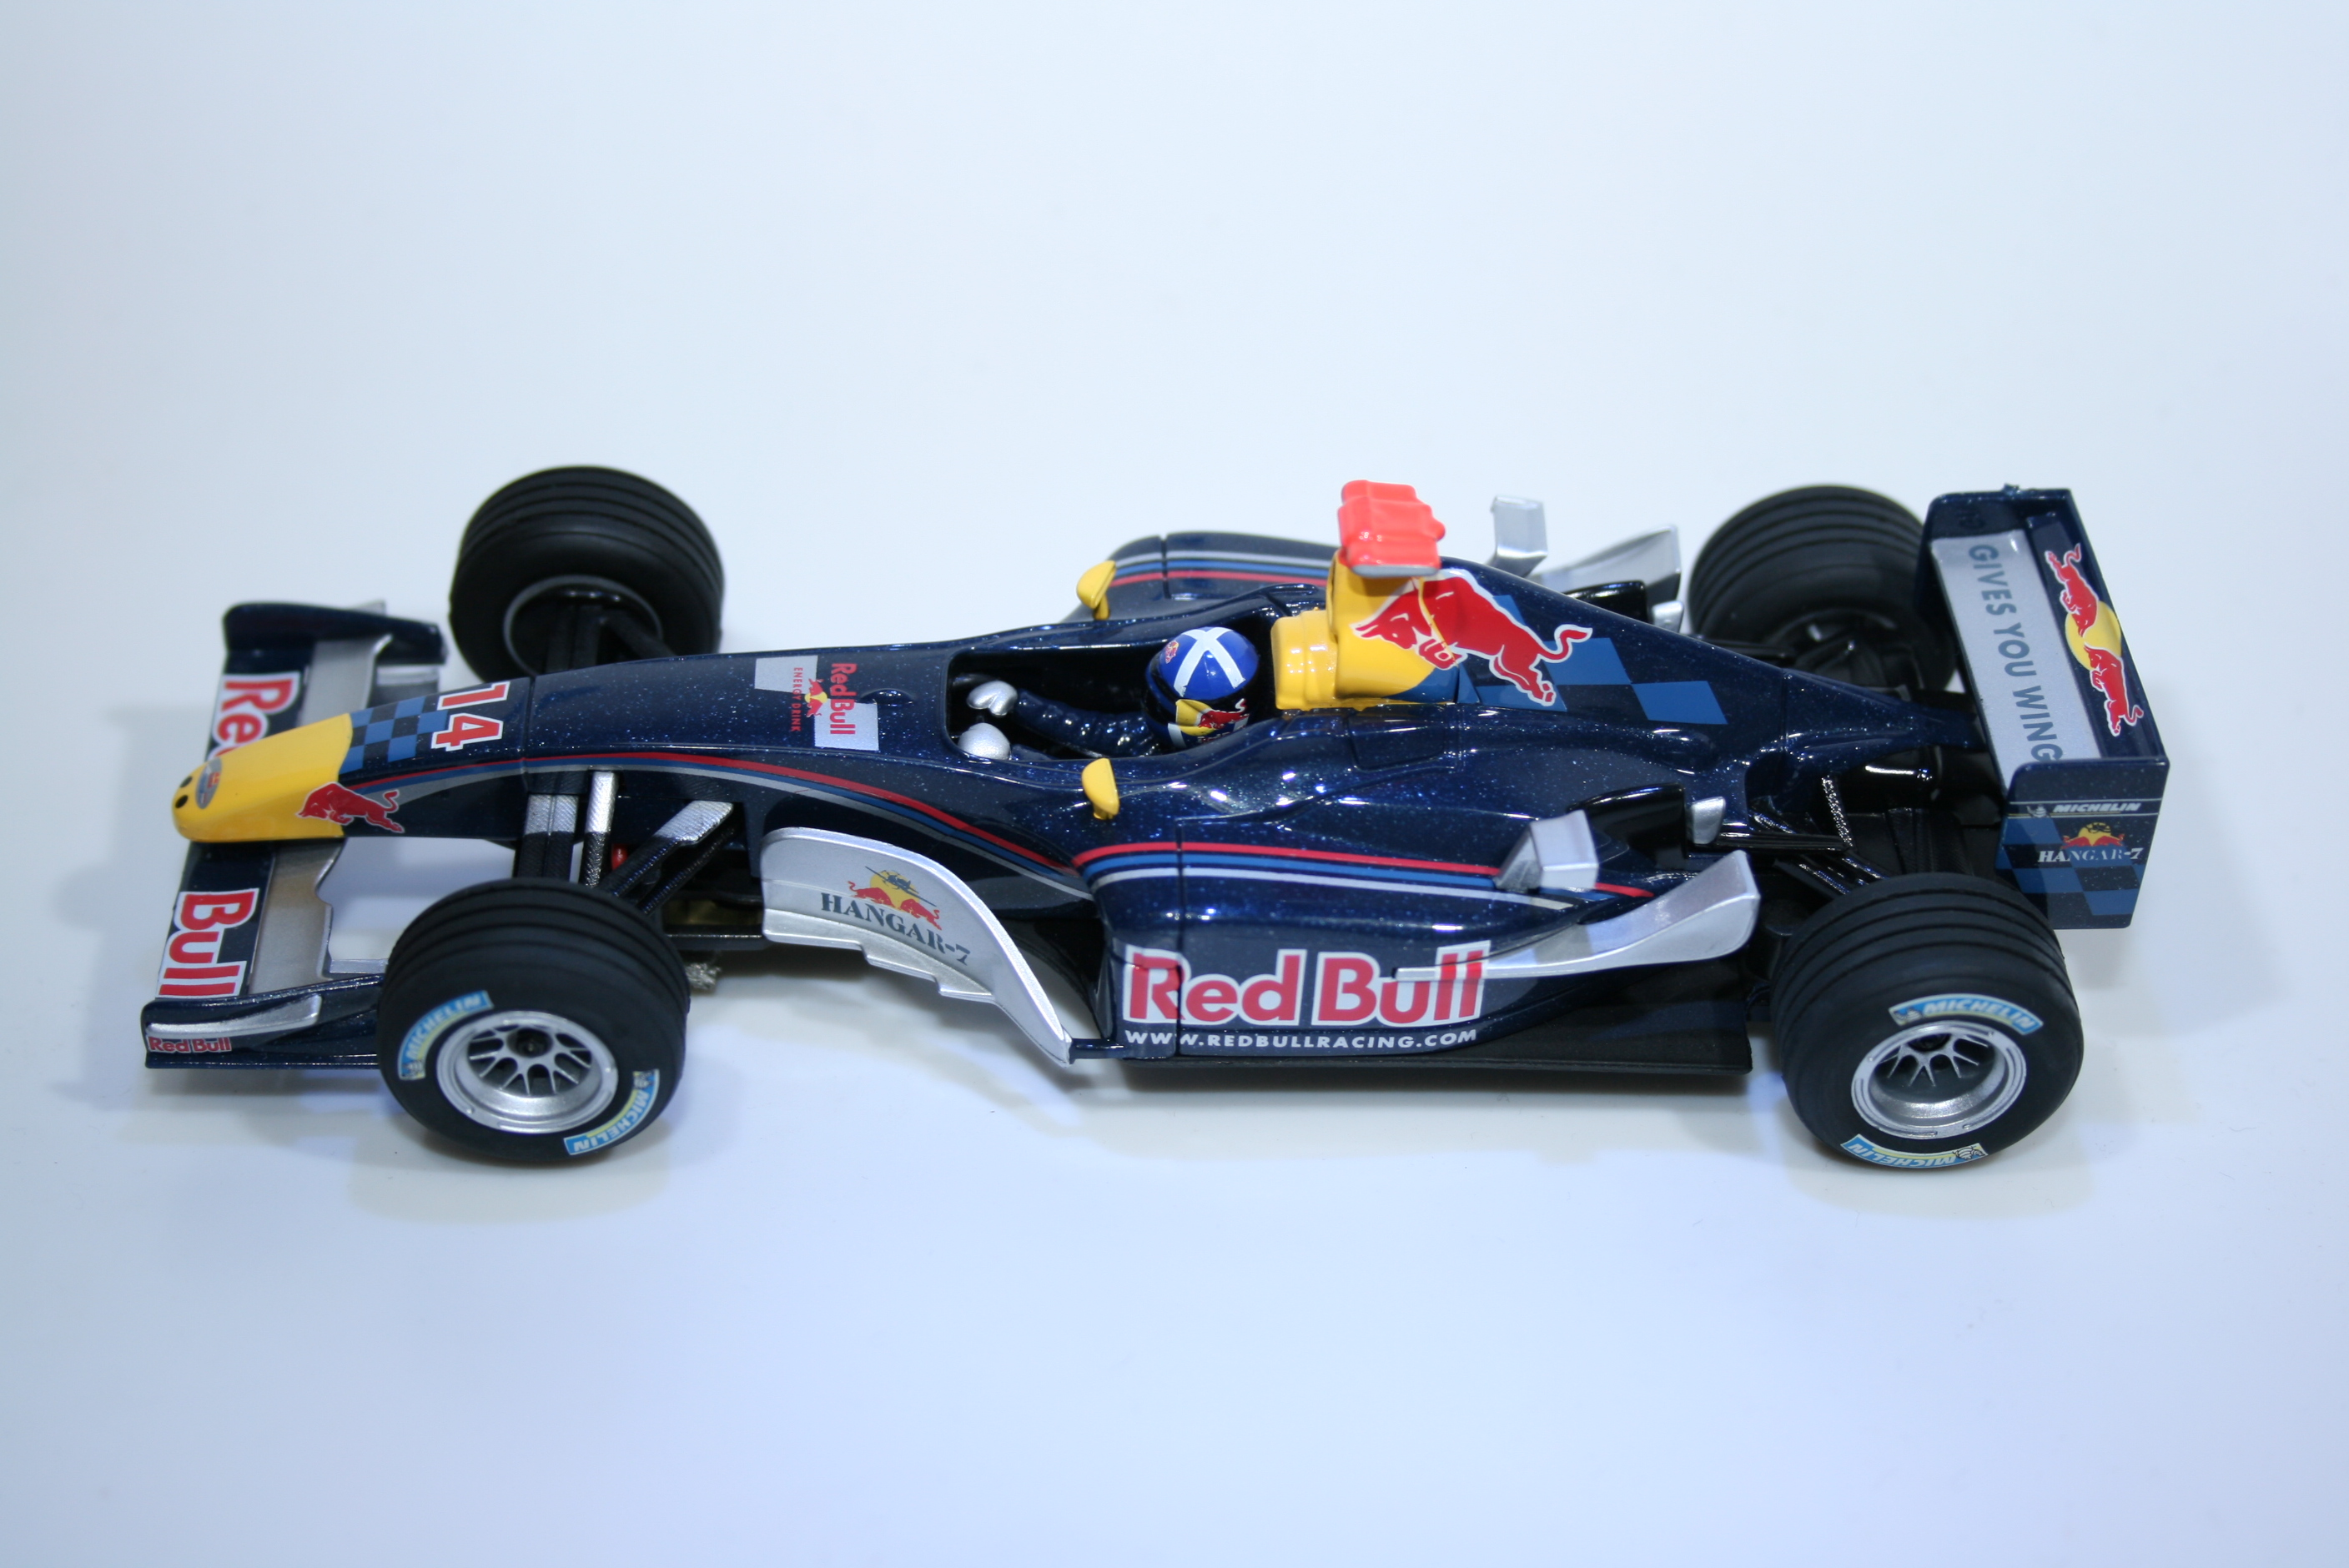 363 Red Bull RB1 2005 D Coulthard Carrera 27111 2006 Boxed